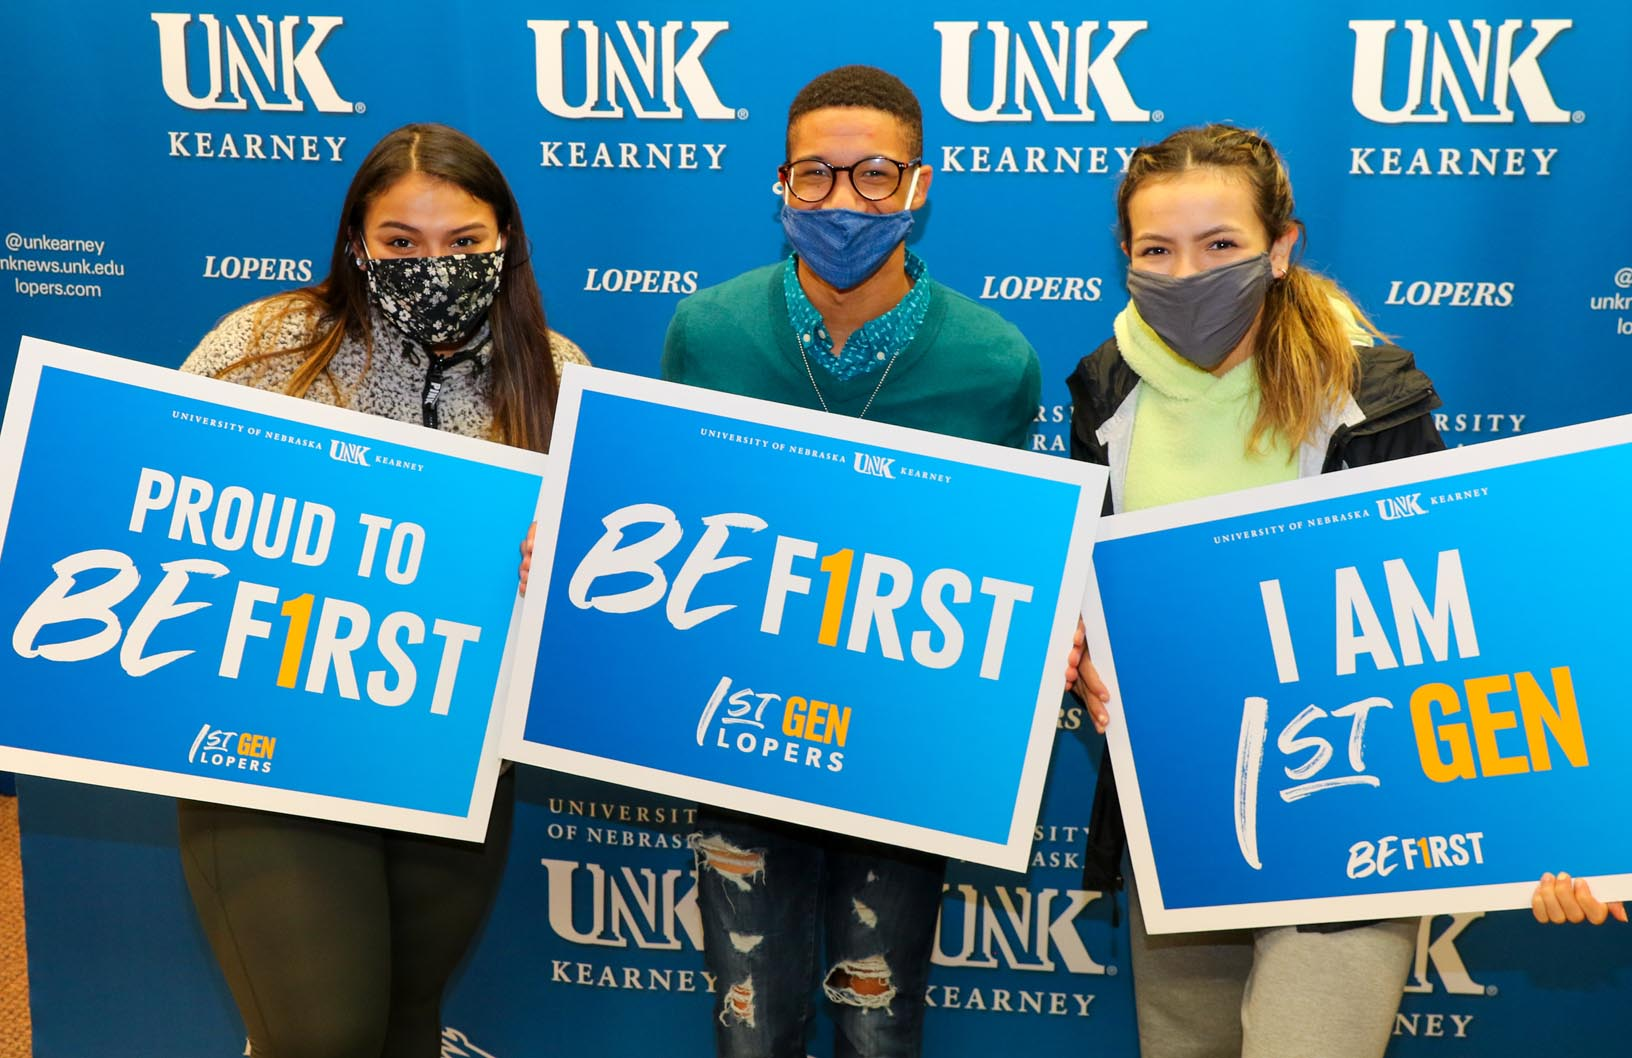 UNK hosted its second annual First Gen Day on Monday. The event celebrates the success of first-generation faculty, staff and students and highlights the opportunities available at UNK. (Photos by Todd Gottula, UNK Communications)